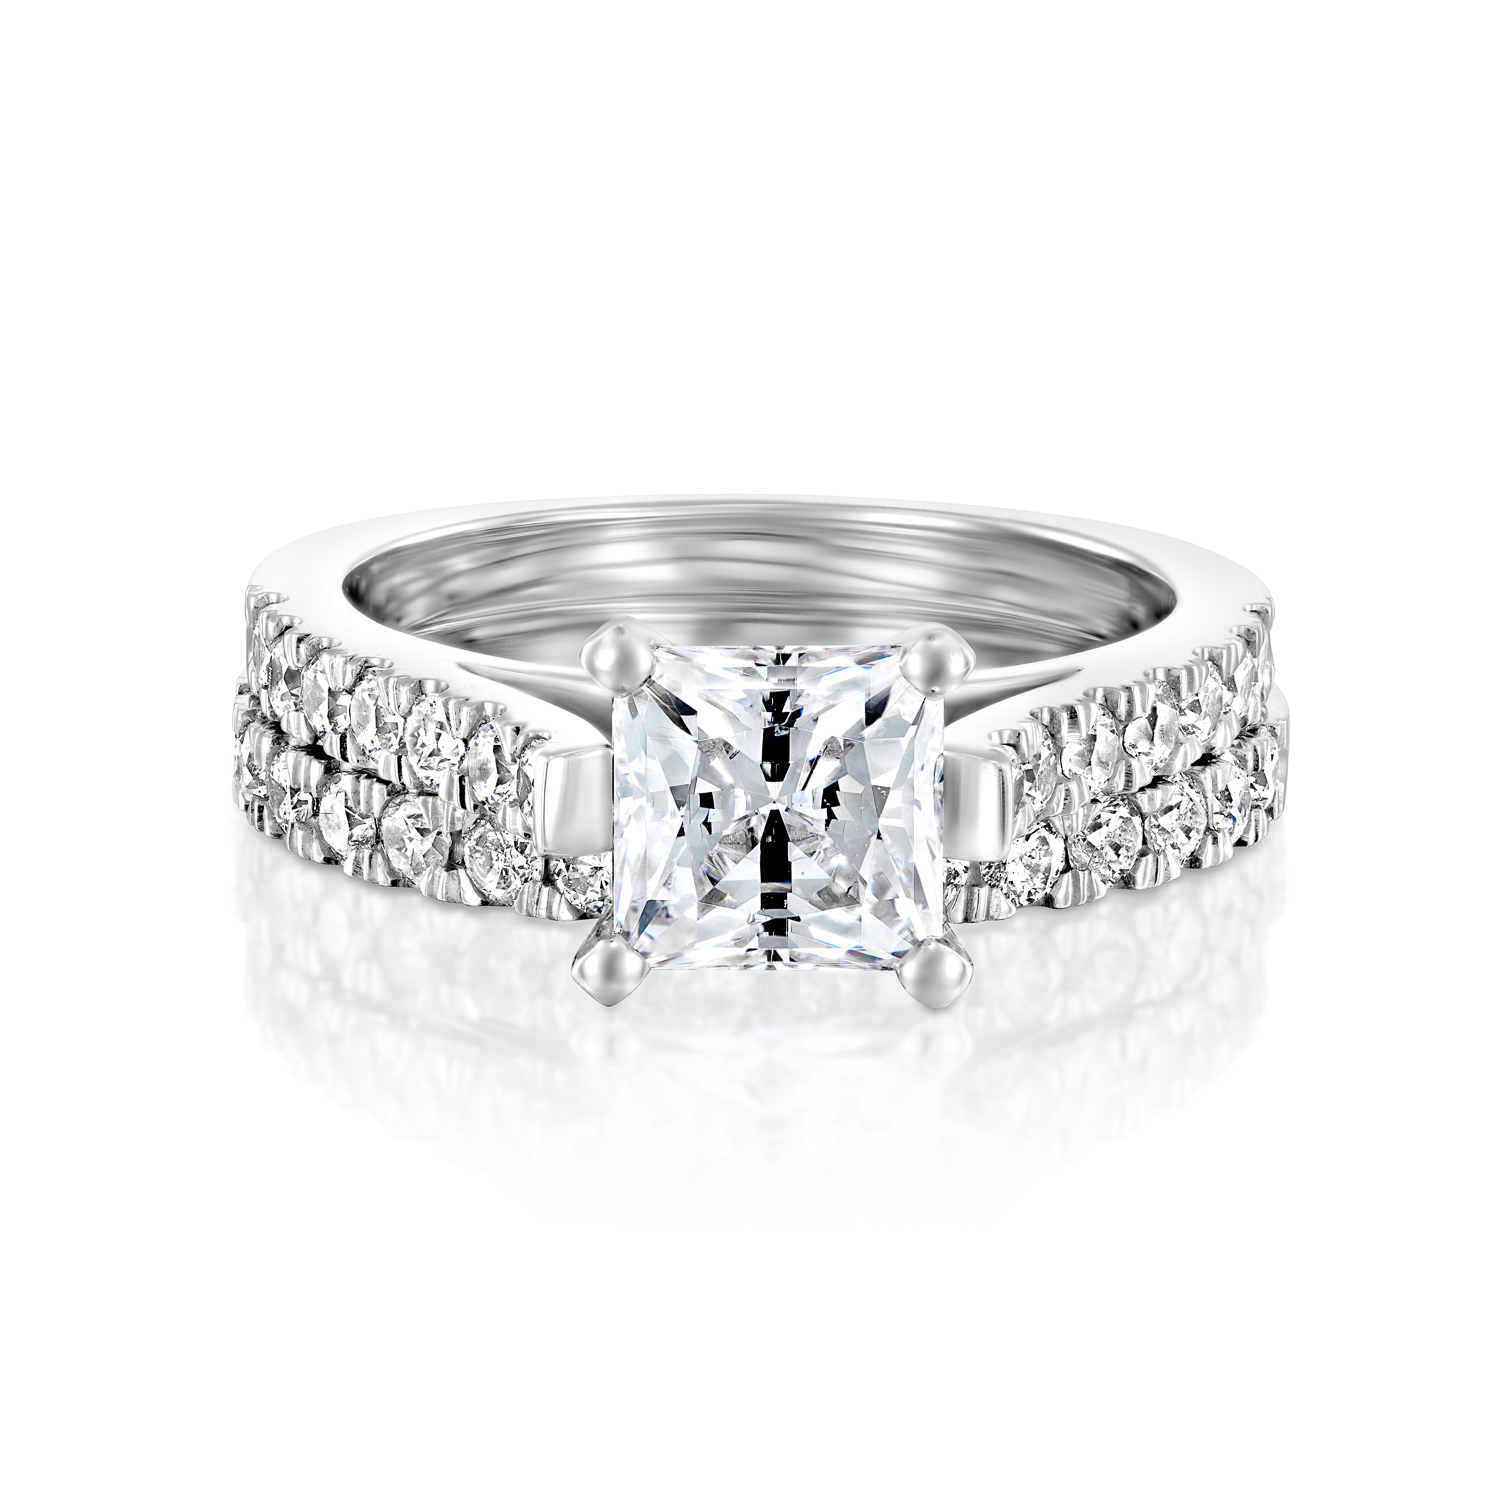 Felicienne Premier In White Gold 0.60Ct (1.50Cttw) Throughout Most Current Enhanced Blue Diamond Vintage Style Anniversary Bands In White Gold (Gallery 23 of 25)